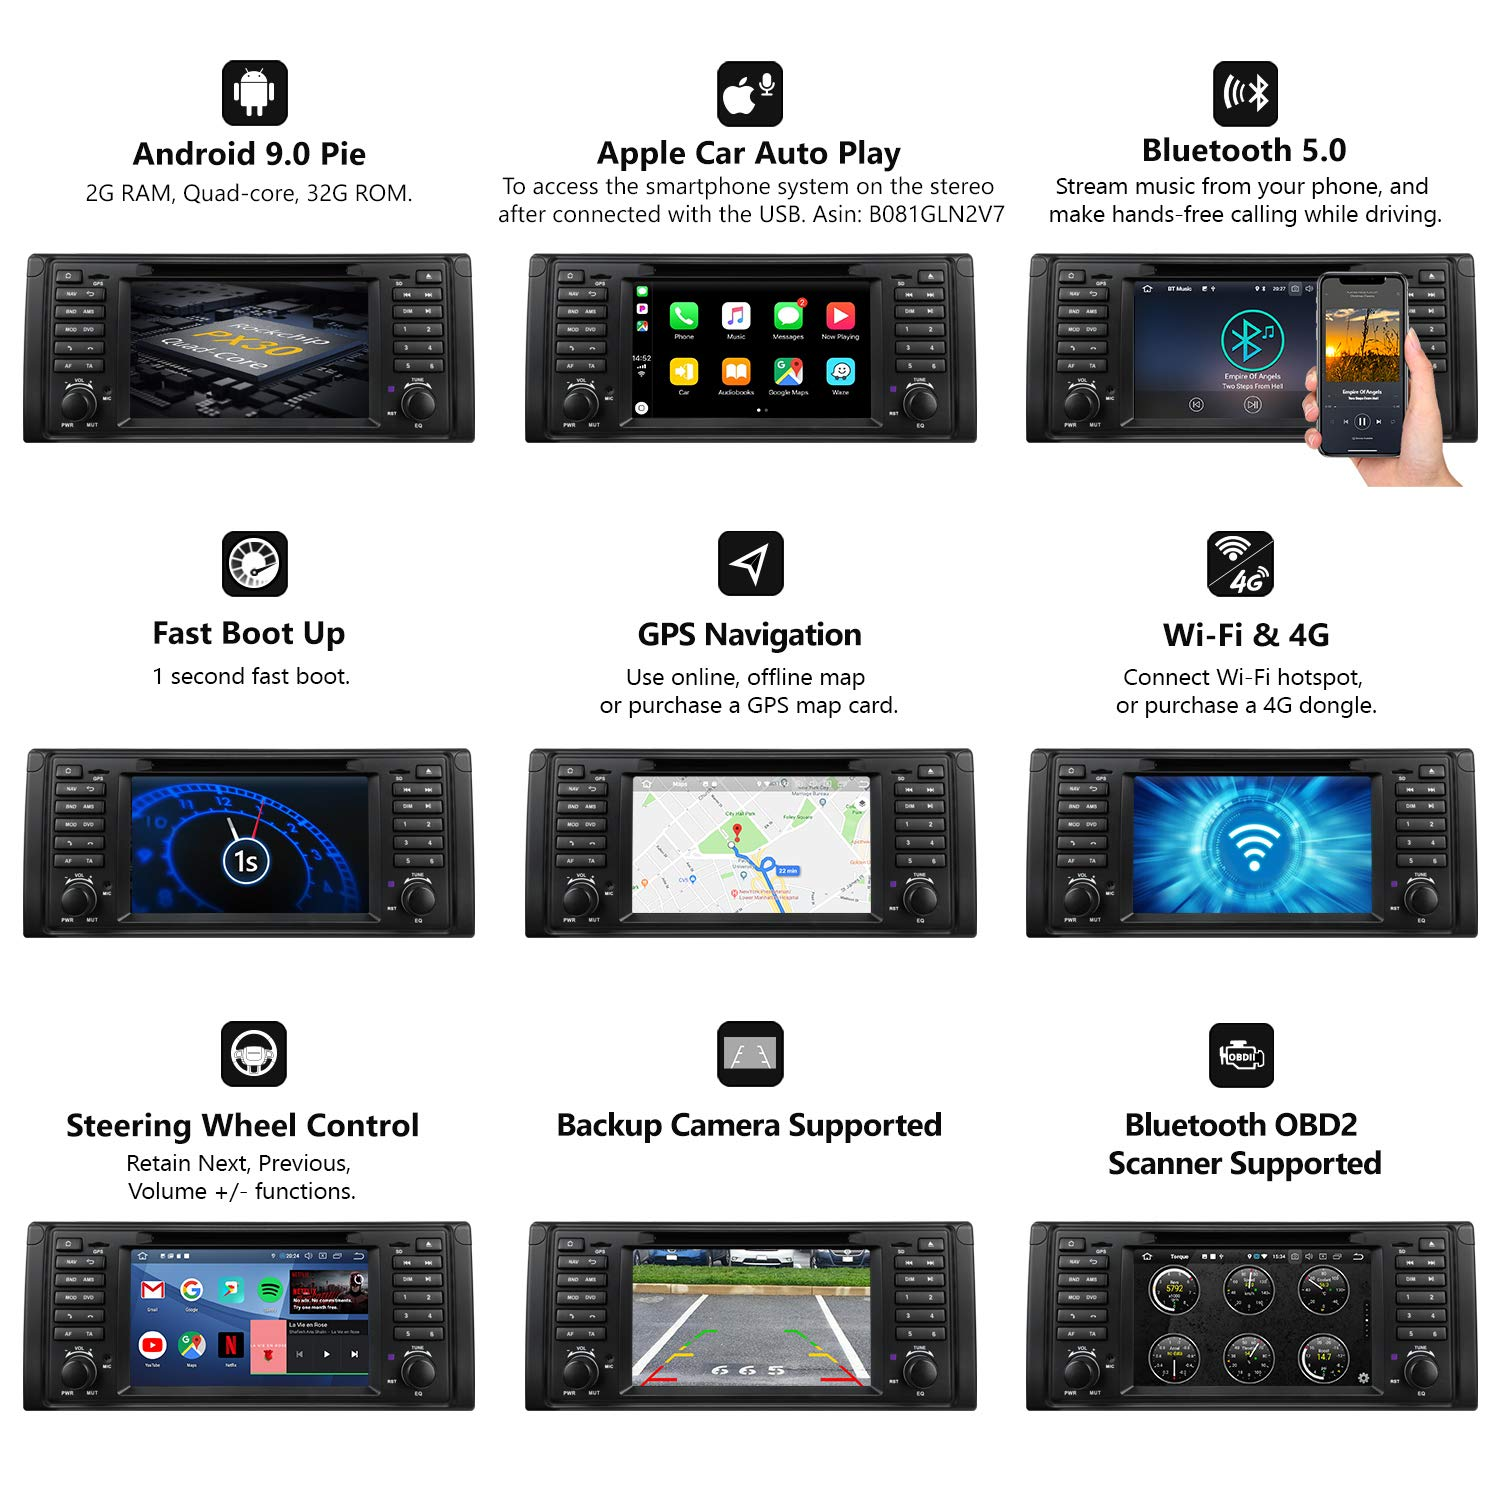 Support Apple Carplay//Android Auto//Bluetooth 5.0//WiFi//Fast Boot//DVR//Backup Camera//OBDII-GA9349 E39 Car Stereo Android Radio Eonon 7 Inch Android 9.0 Car Radio Applicable to BMW 5 Series 1995-2002